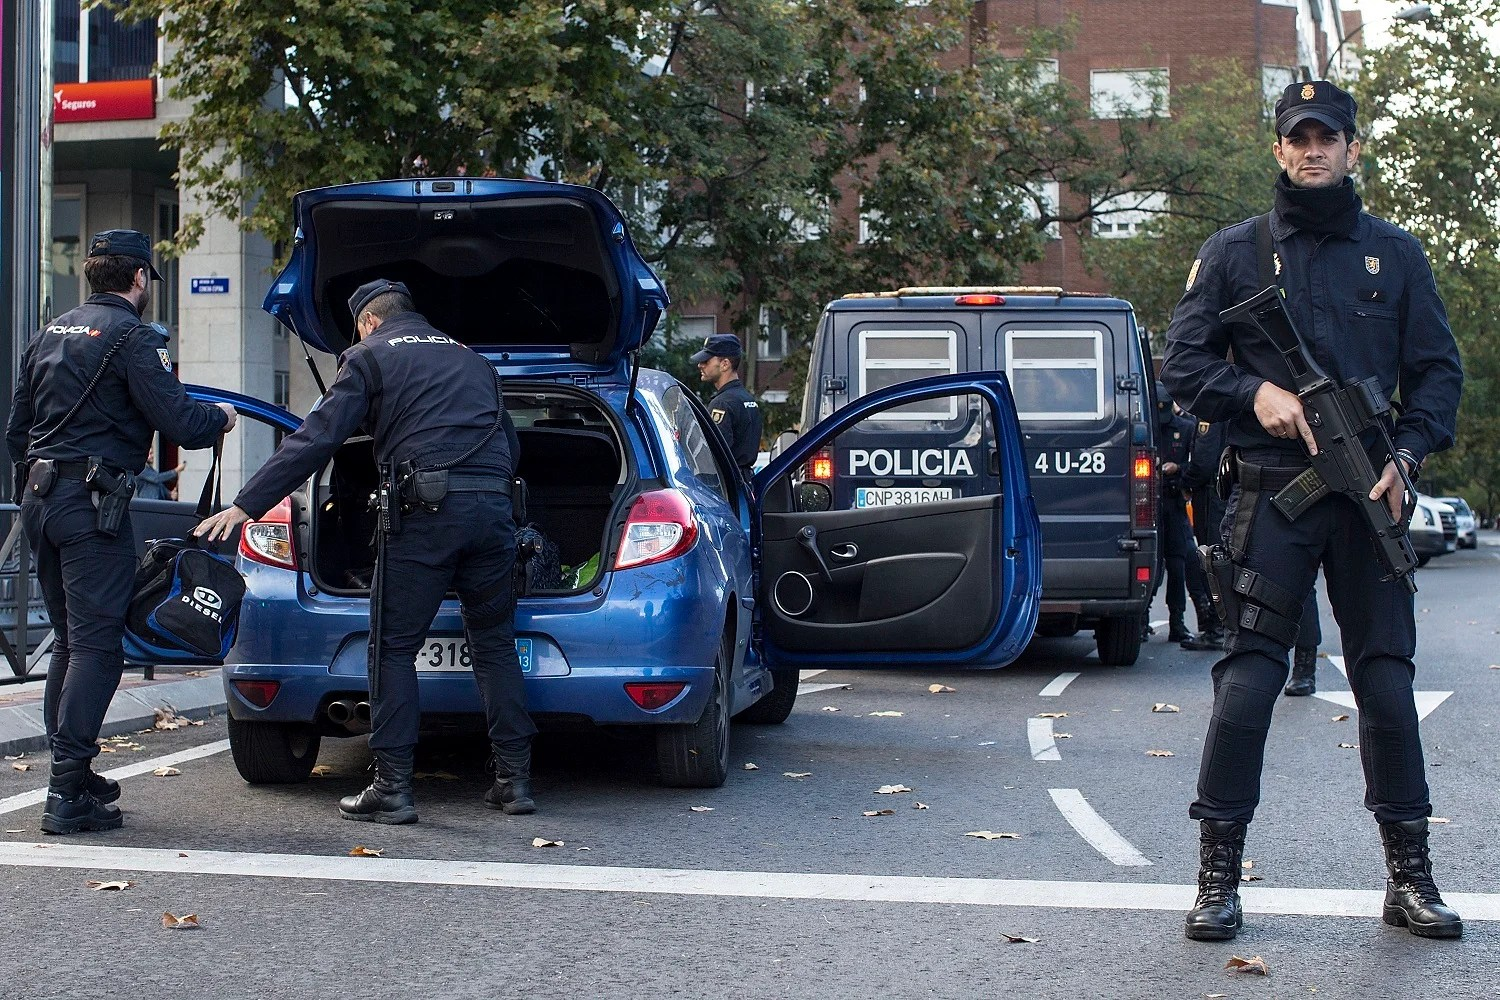 US State Department Issues Travel Advisory for Spain, Warning of Terrorism Threats